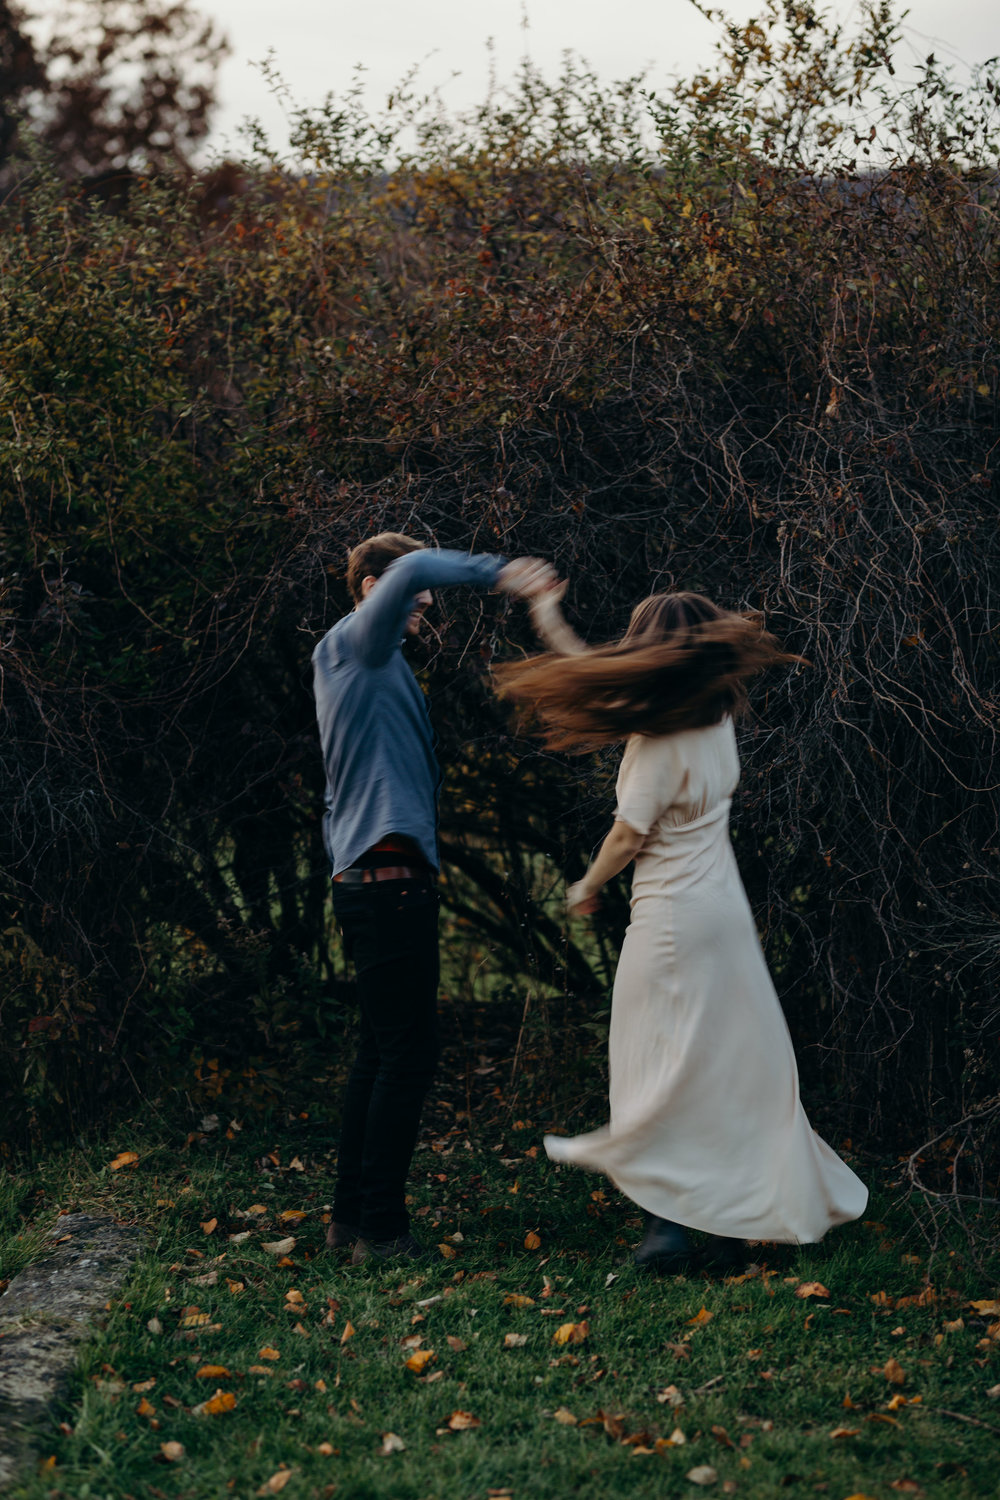 rustic-autumn-fall-north-northern-new-jersey-couple-portrait-elopement-photographer-187.jpg